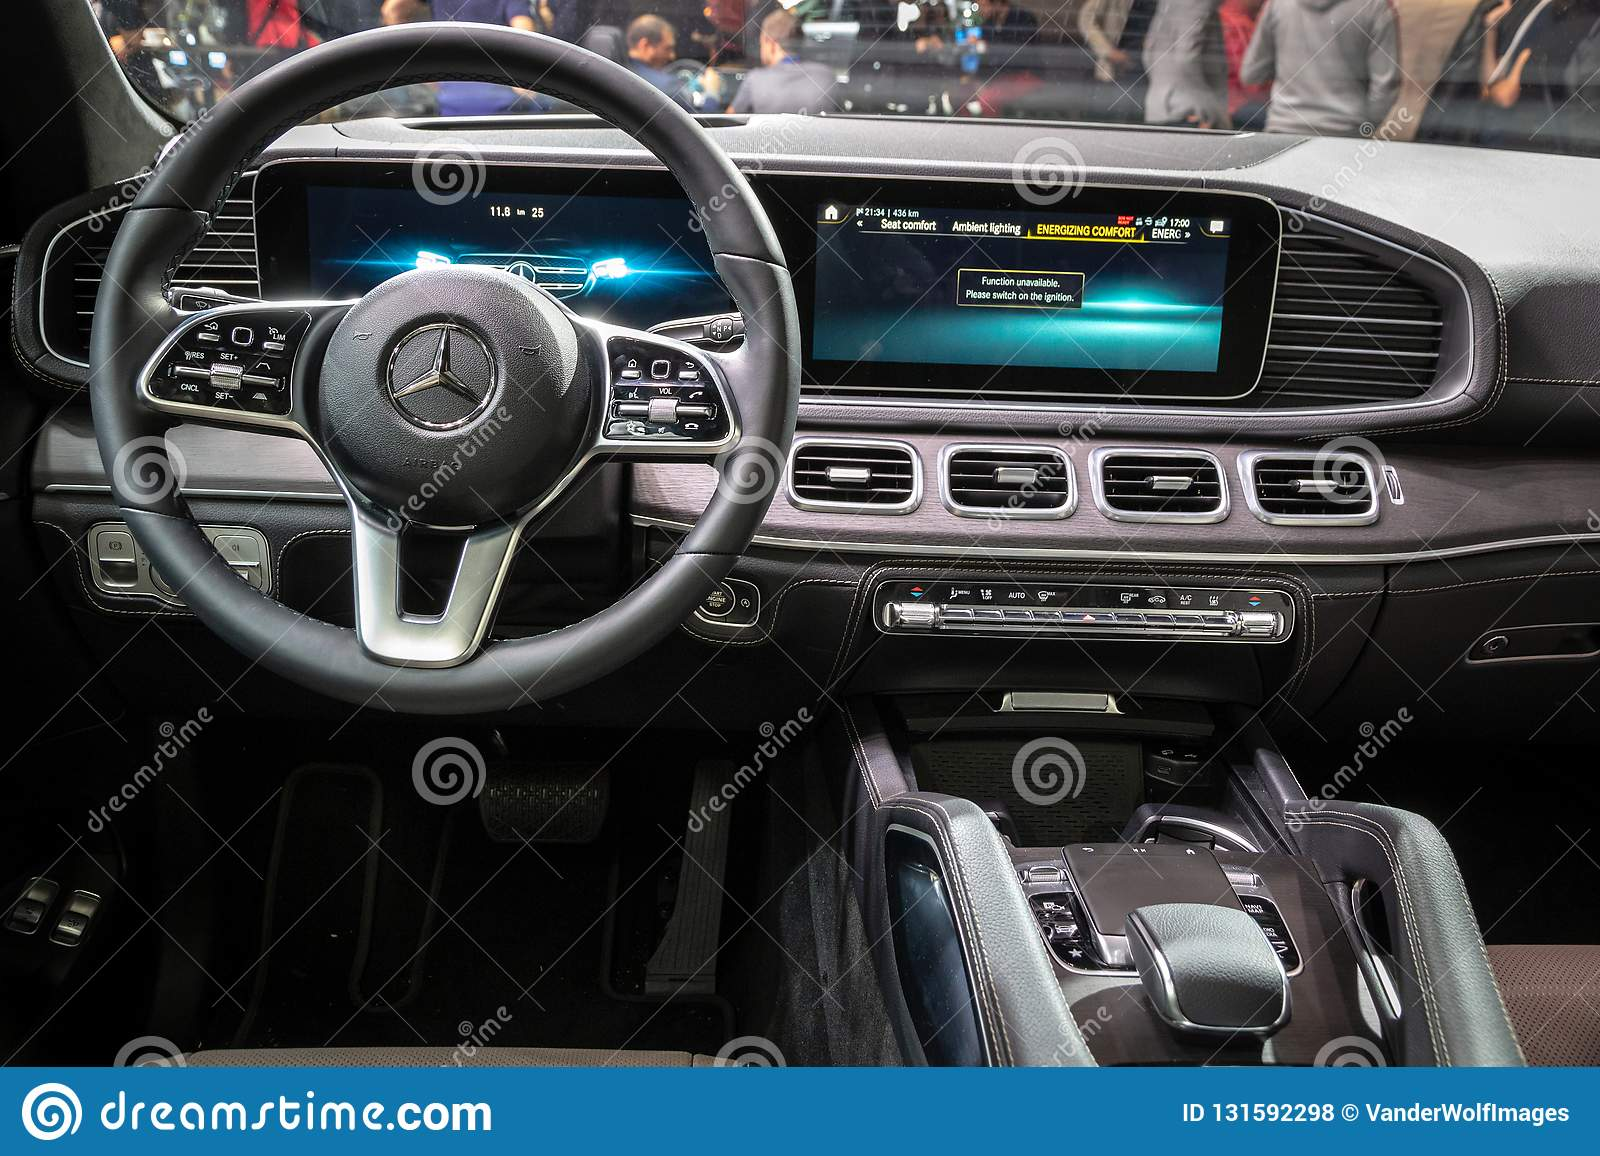 New 2020 Mercedes GLE 300d 4MATIC Car Interior Showcased At The